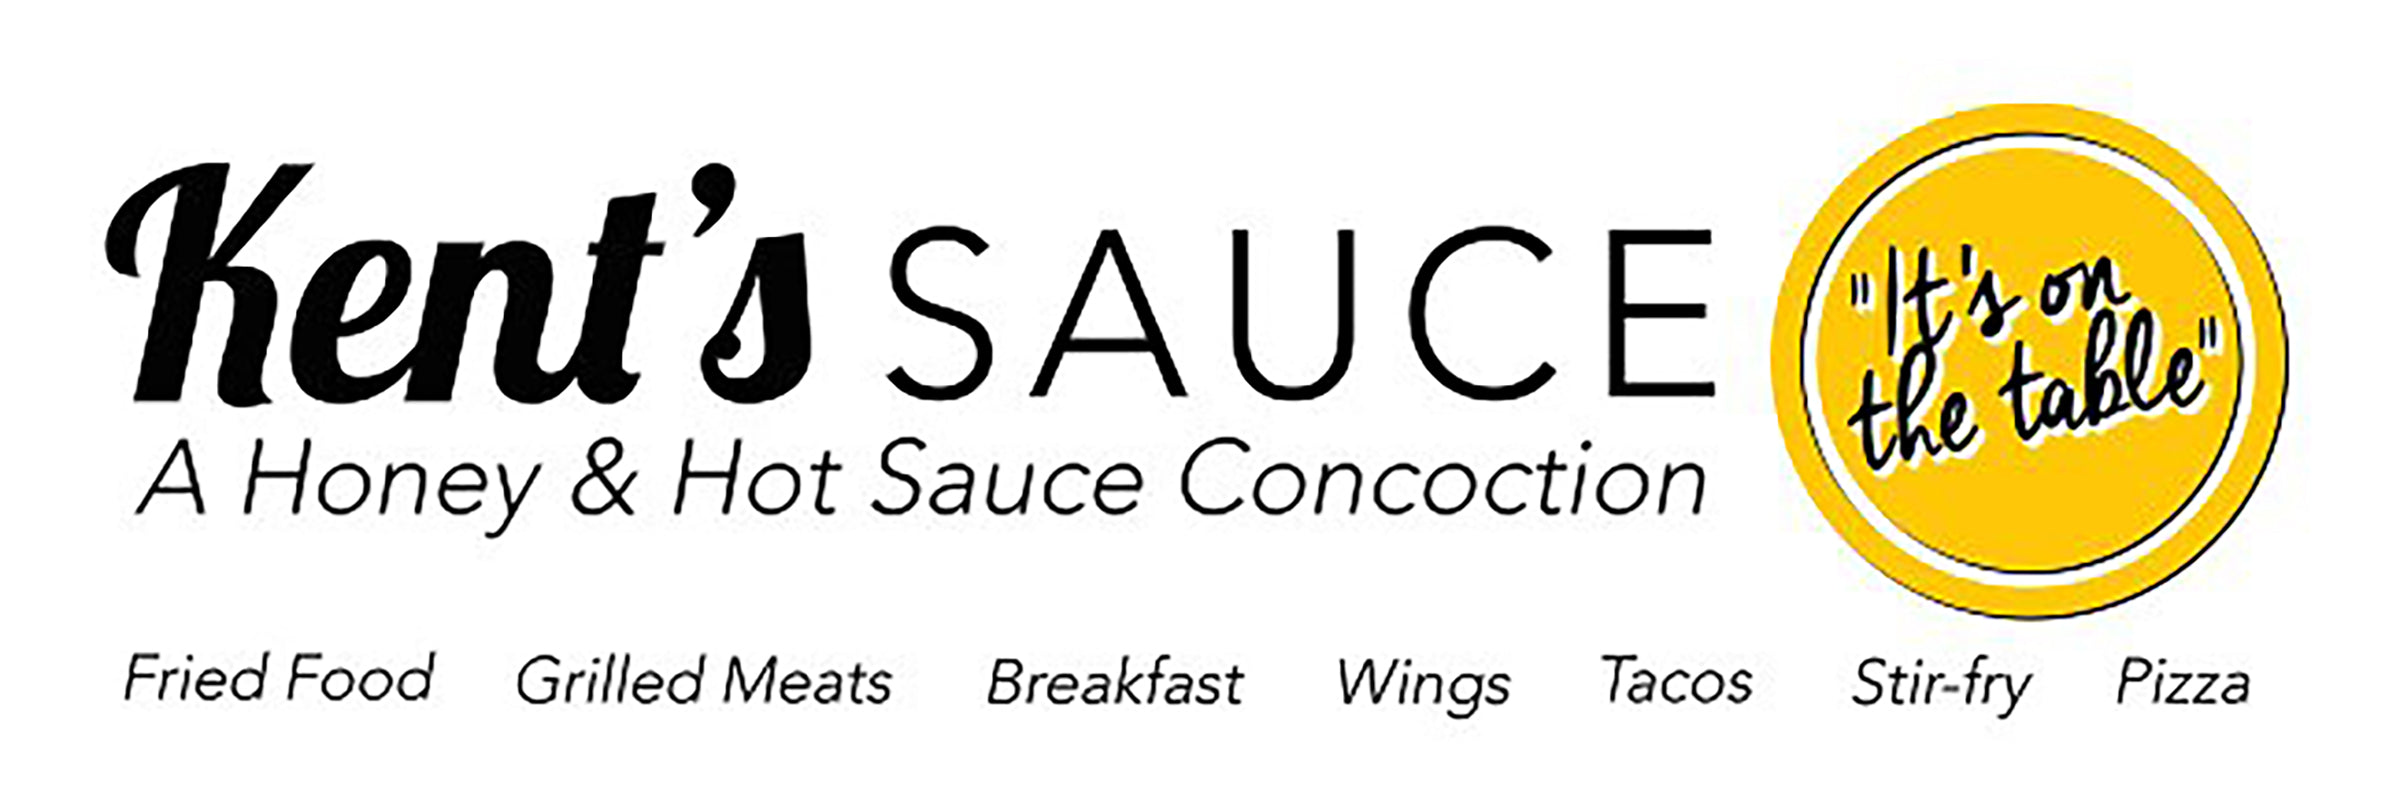 logo banner that reads Kent's Sauce a honey and hot sauce concoction for fried food grilled meats breakfast foods wings tacos stirfry and pizza